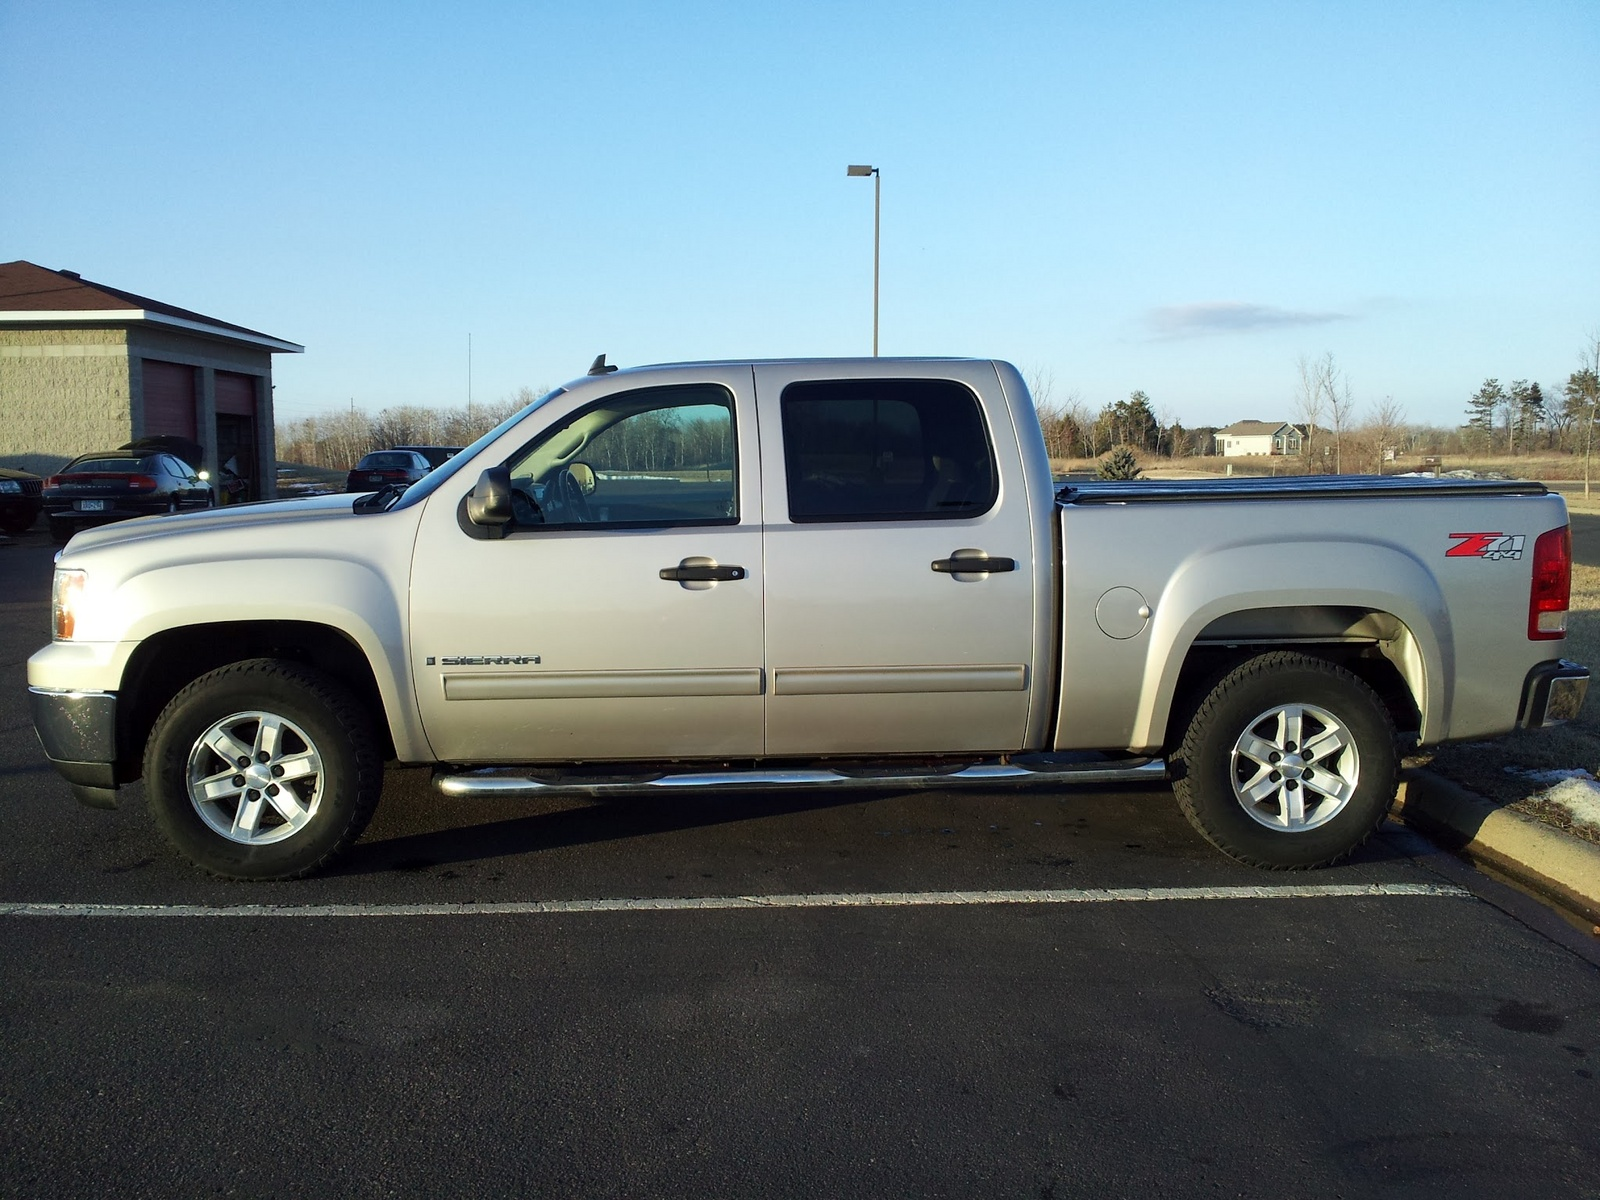 Watch besides 2010 Gmc Sierra 1500 Pictures C21987 pi37205251 also 1980 Chevy Blazer K5 For Sale together with 1983 Chevrolet Camaro Pictures C3682 also Protruckseats. on 1990 chevrolet silverado 3500